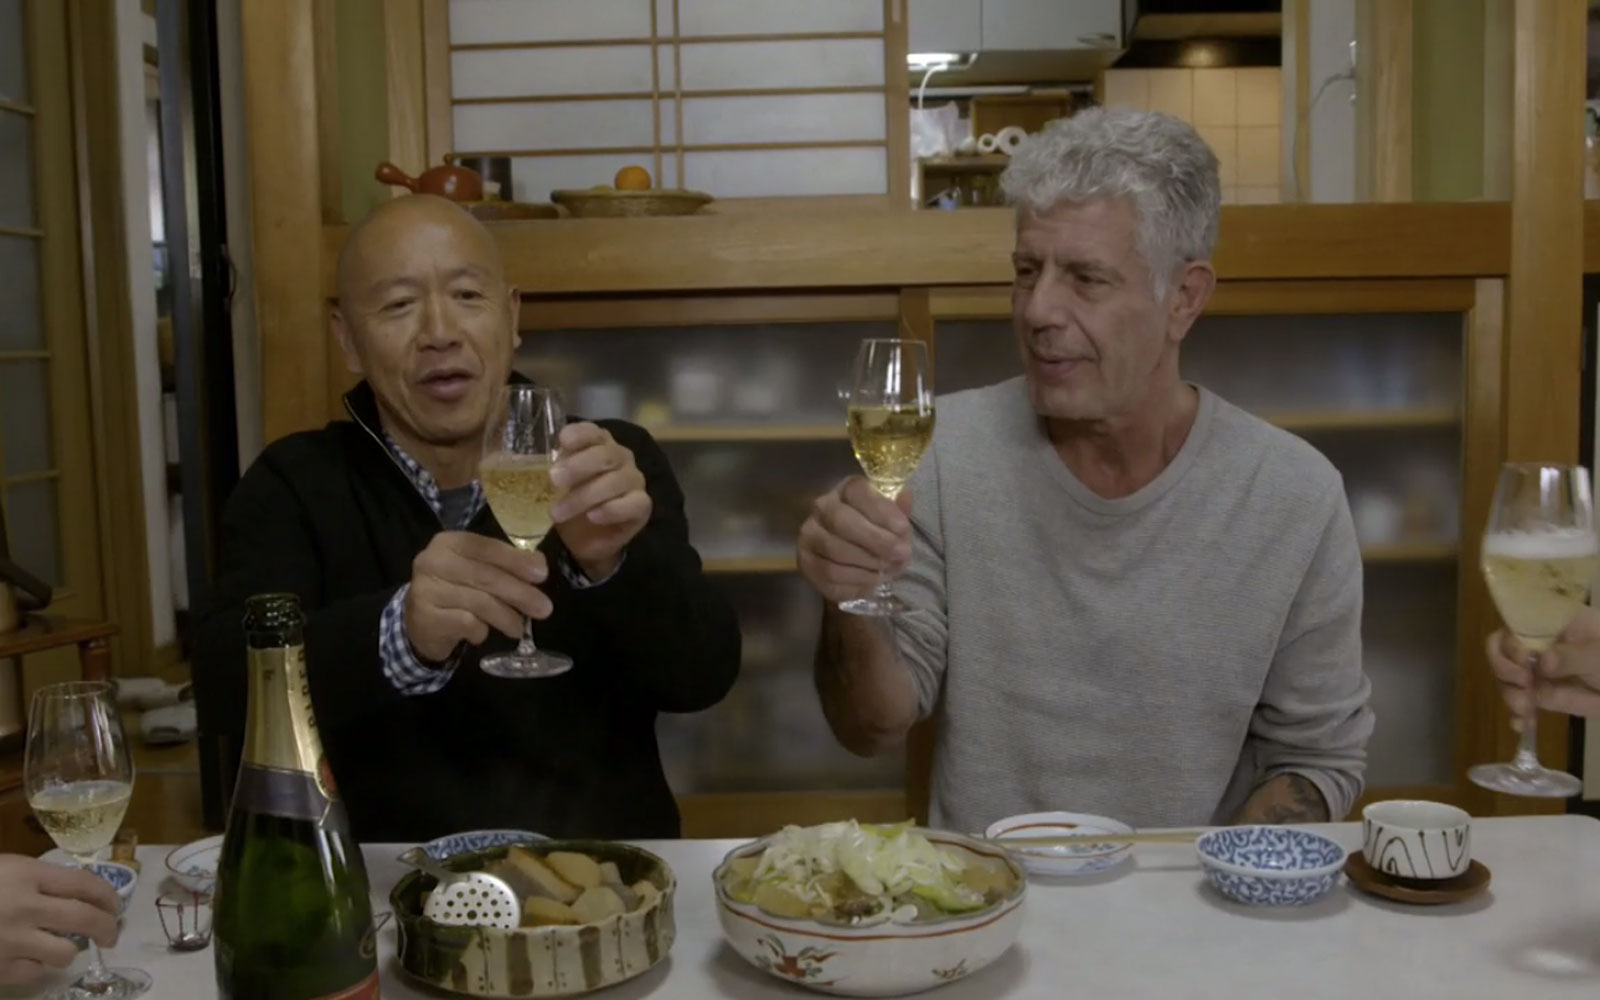 Anthony Bourdain Takes a Food Tour of Japan With Chef Masa Takayama